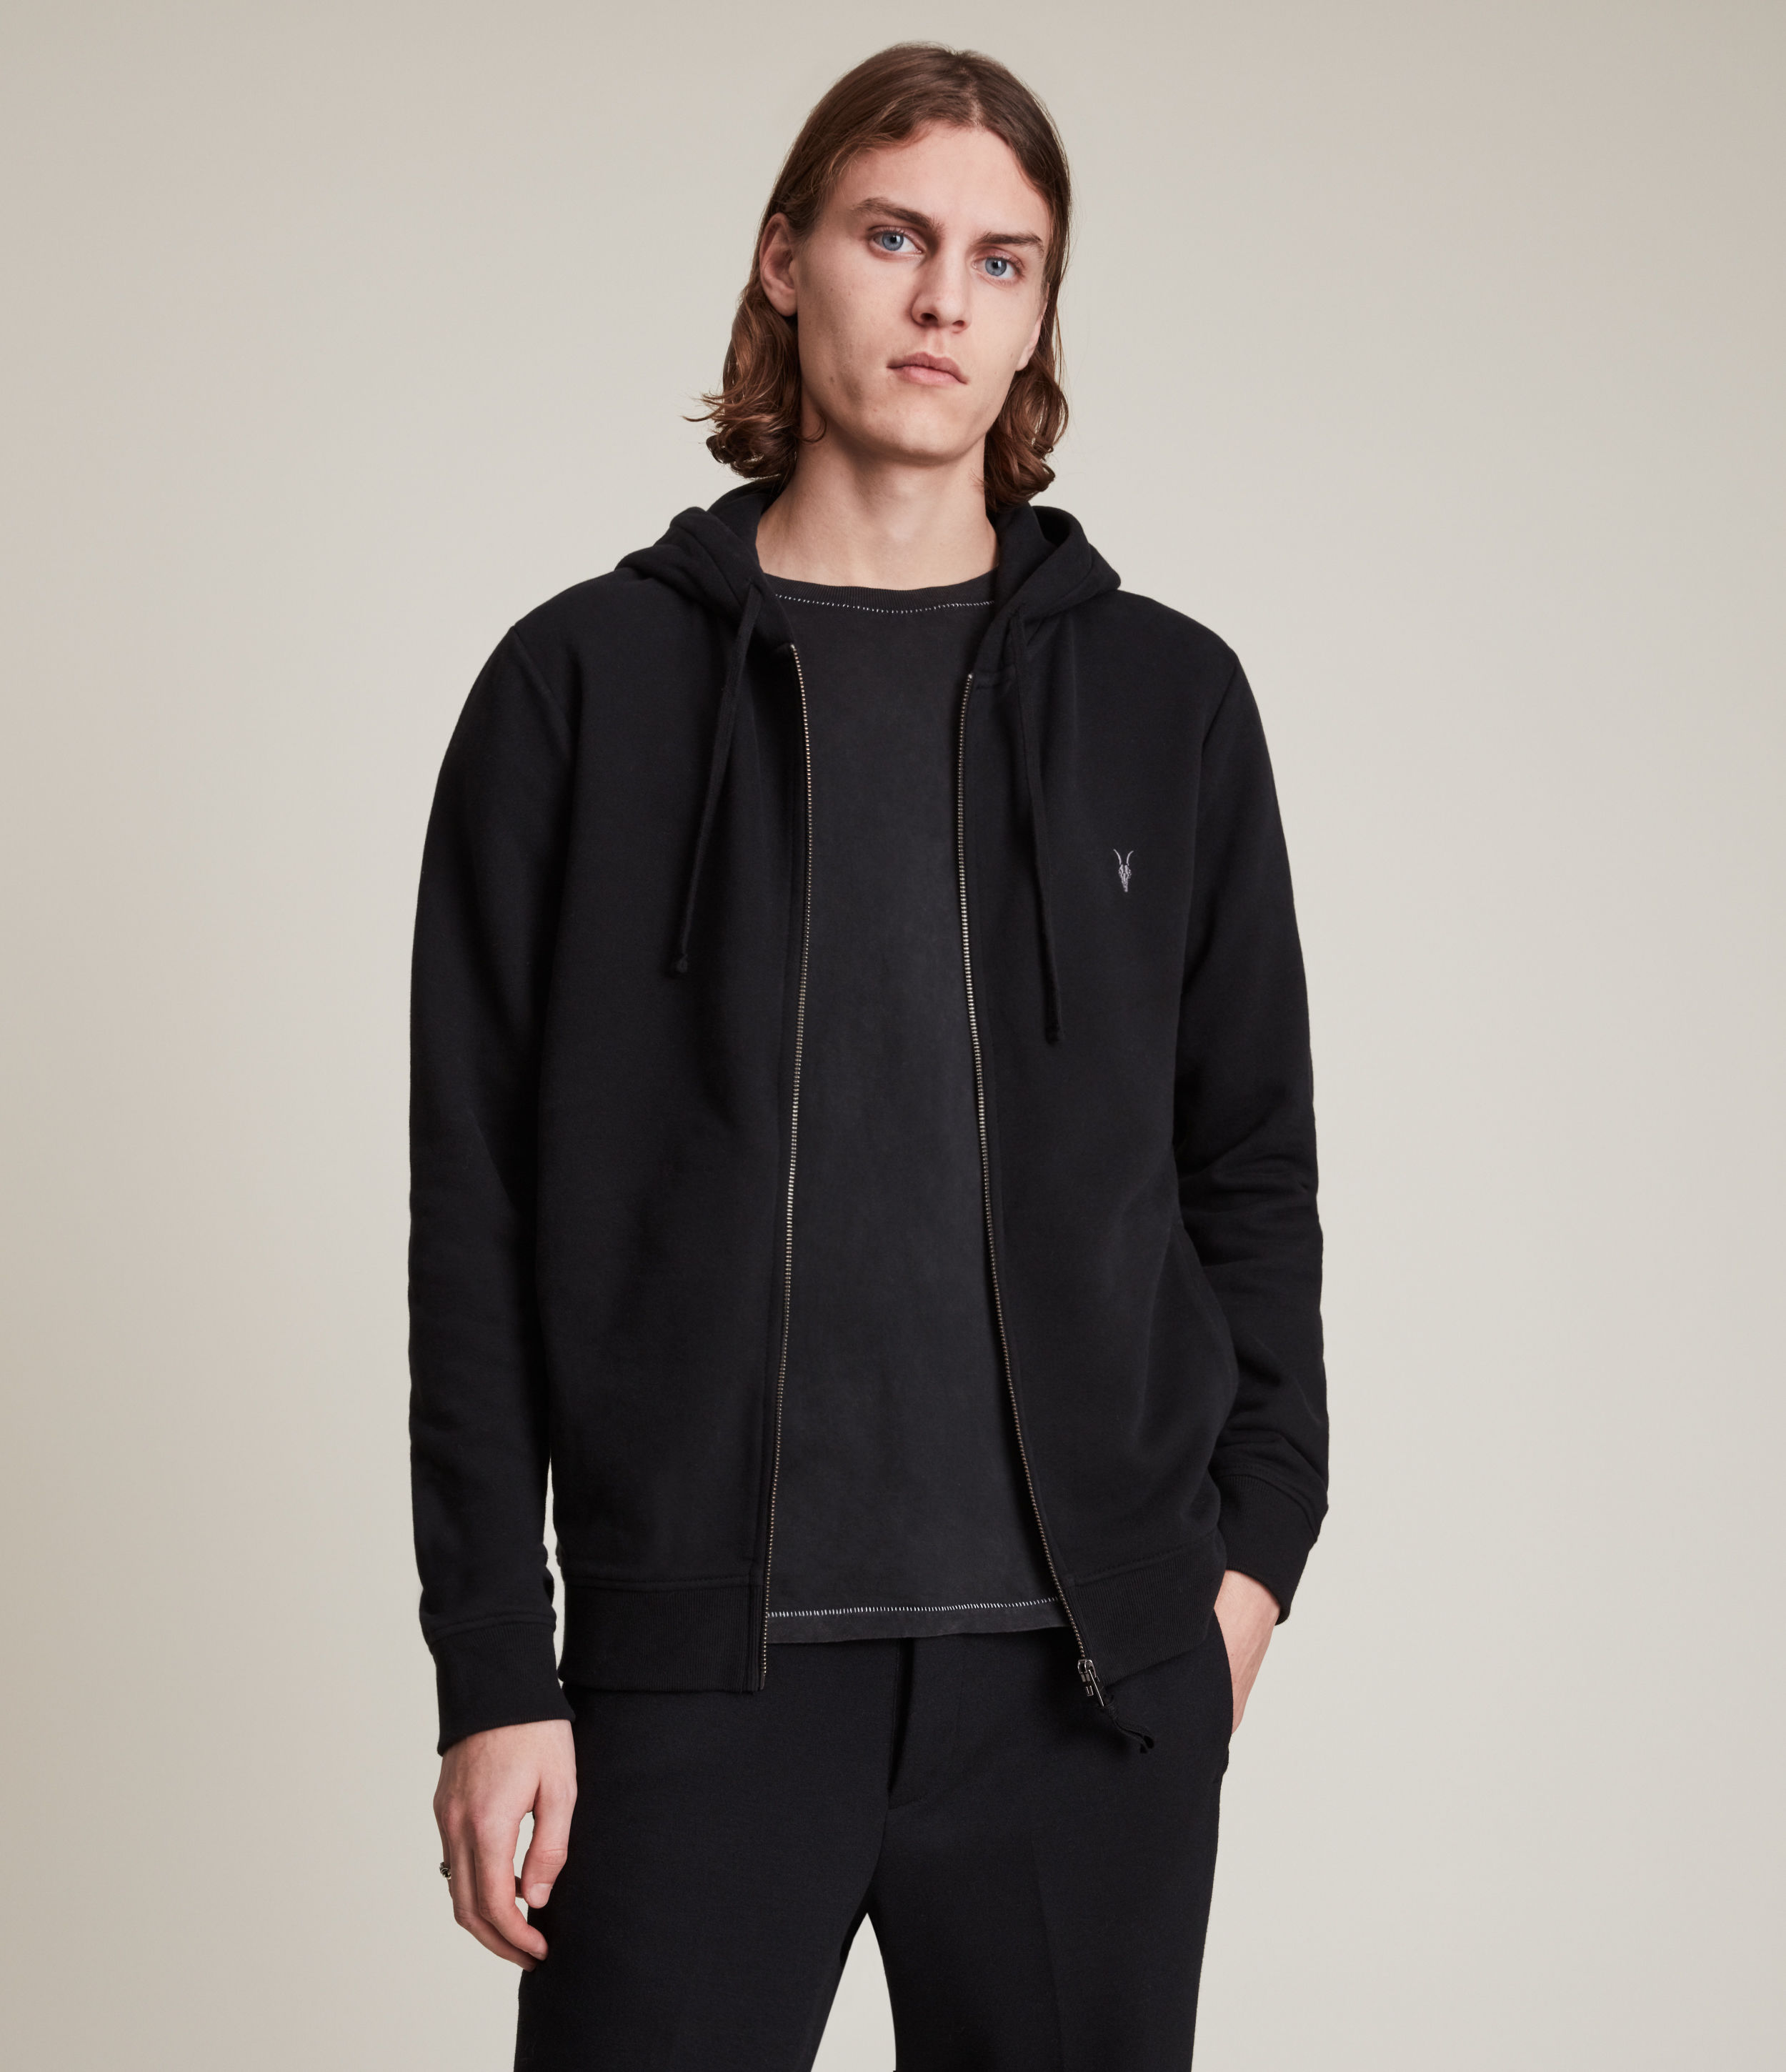 AllSaints Men's Cotton Slim Fit Raven Zip Hoodie, Black, Size: L